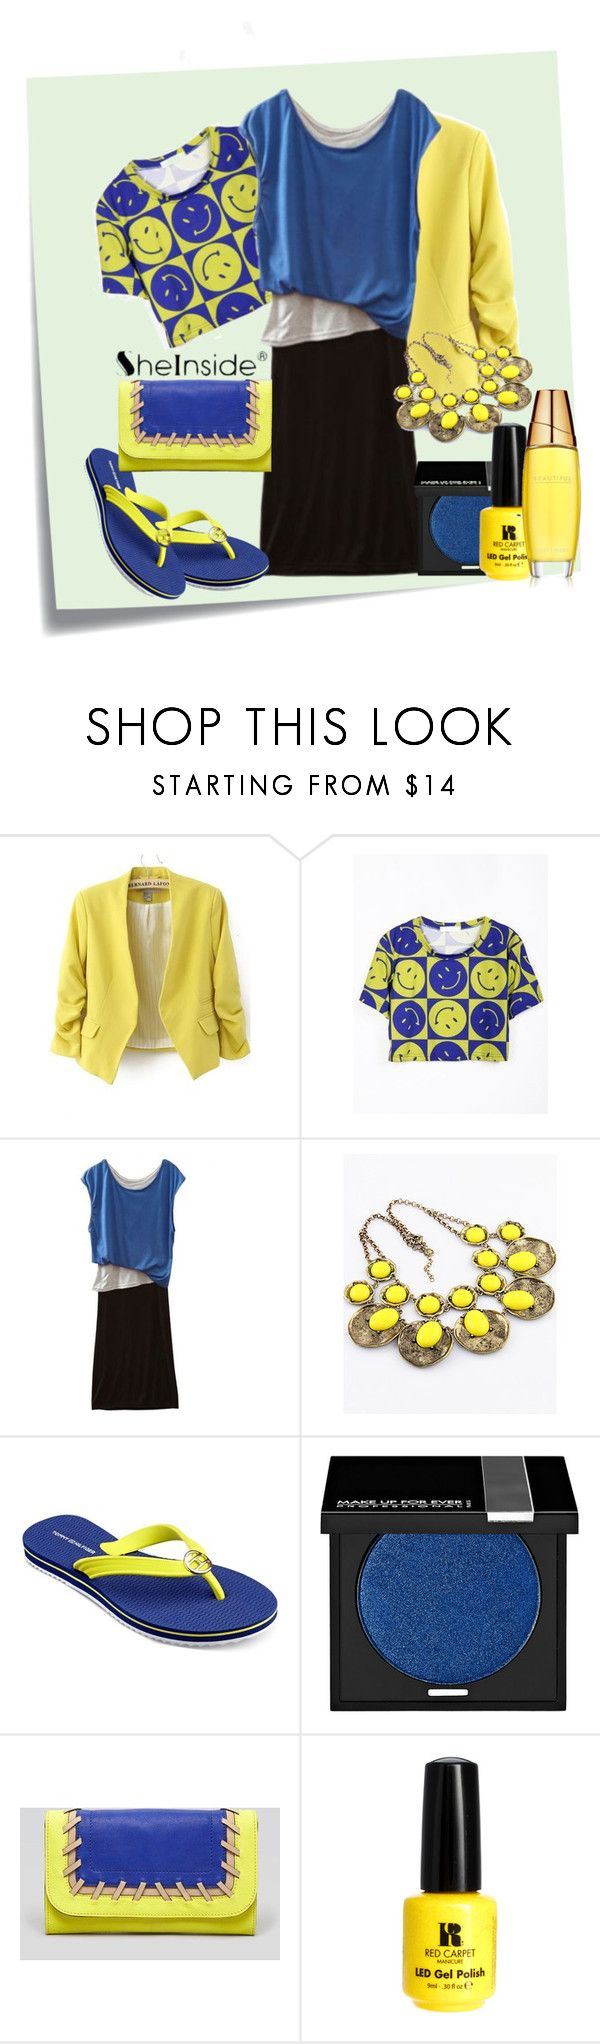 """Summerlaugh!"" by armband ❤ liked on Polyvore featuring Post-It, Retrò, Tommy Hilfiger, MAKE UP FOR EVER, Milly, Red Carpet Manicure and Estée Lauder"